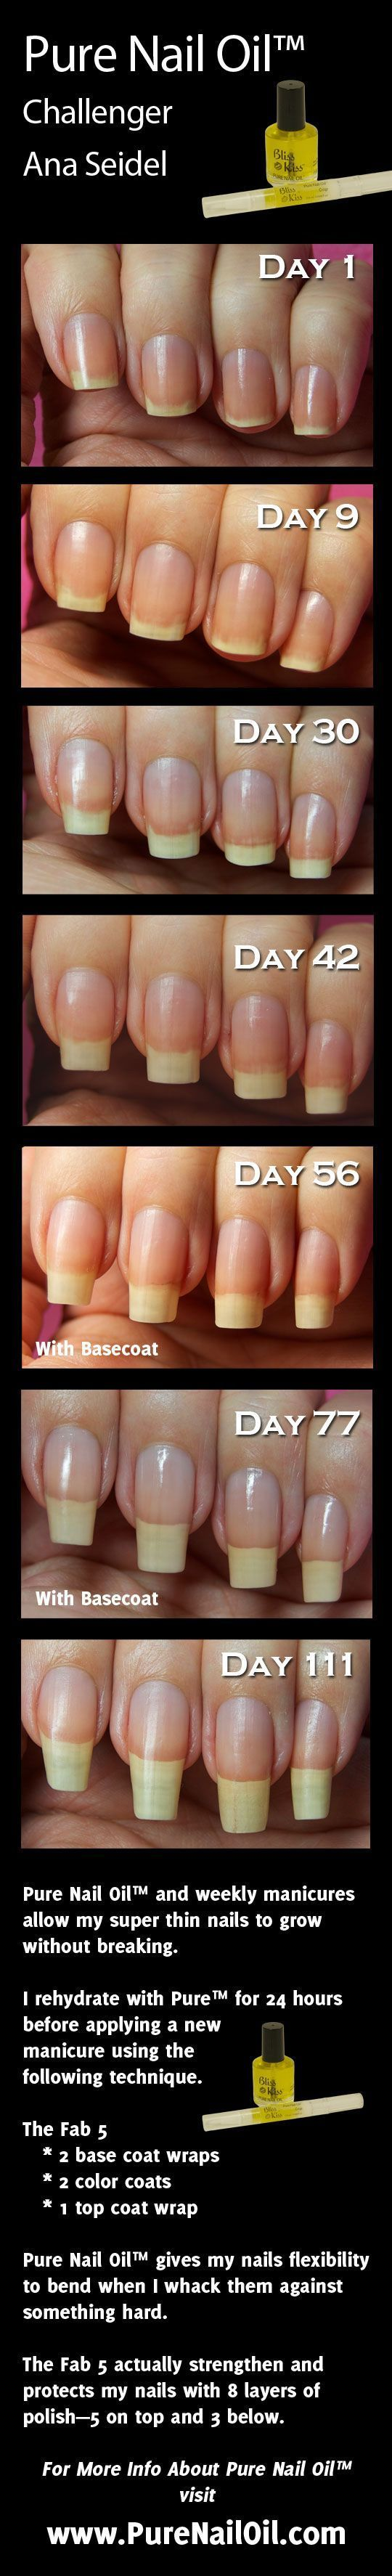 Grow nails long and strong.Hangnails, dry cuticles, and cracked nails.OH MY! I hate them, you hate them. But what's a girl to do? You've tried lotions, creams, ointments and salves. I have too! But as soon as you wash your hands, it's all gone! And you have to start over. Who has time for that? The answer? Nail and cuticle oil. #BlissKiss #Nails #FingerNails #NailOil #CuticleOil #GrowNails